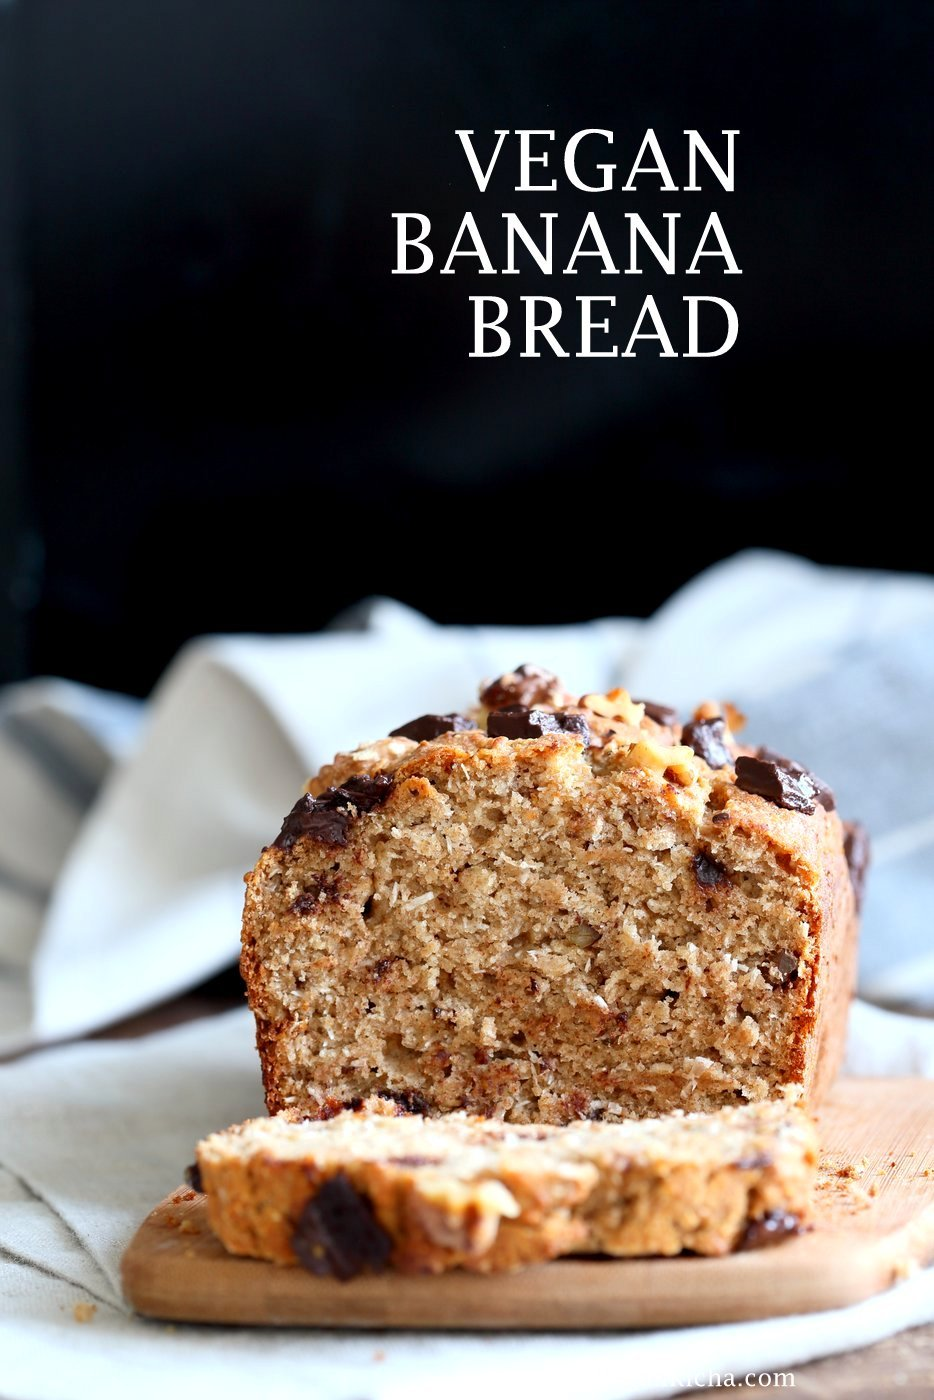 Vegan Banana Bread with Walnuts. Classic super moist Banana bread with toasted nuts and coconut. No Palm oil. 1 Bowl #Vegan #Recipe #veganricha | VeganRicha.com.